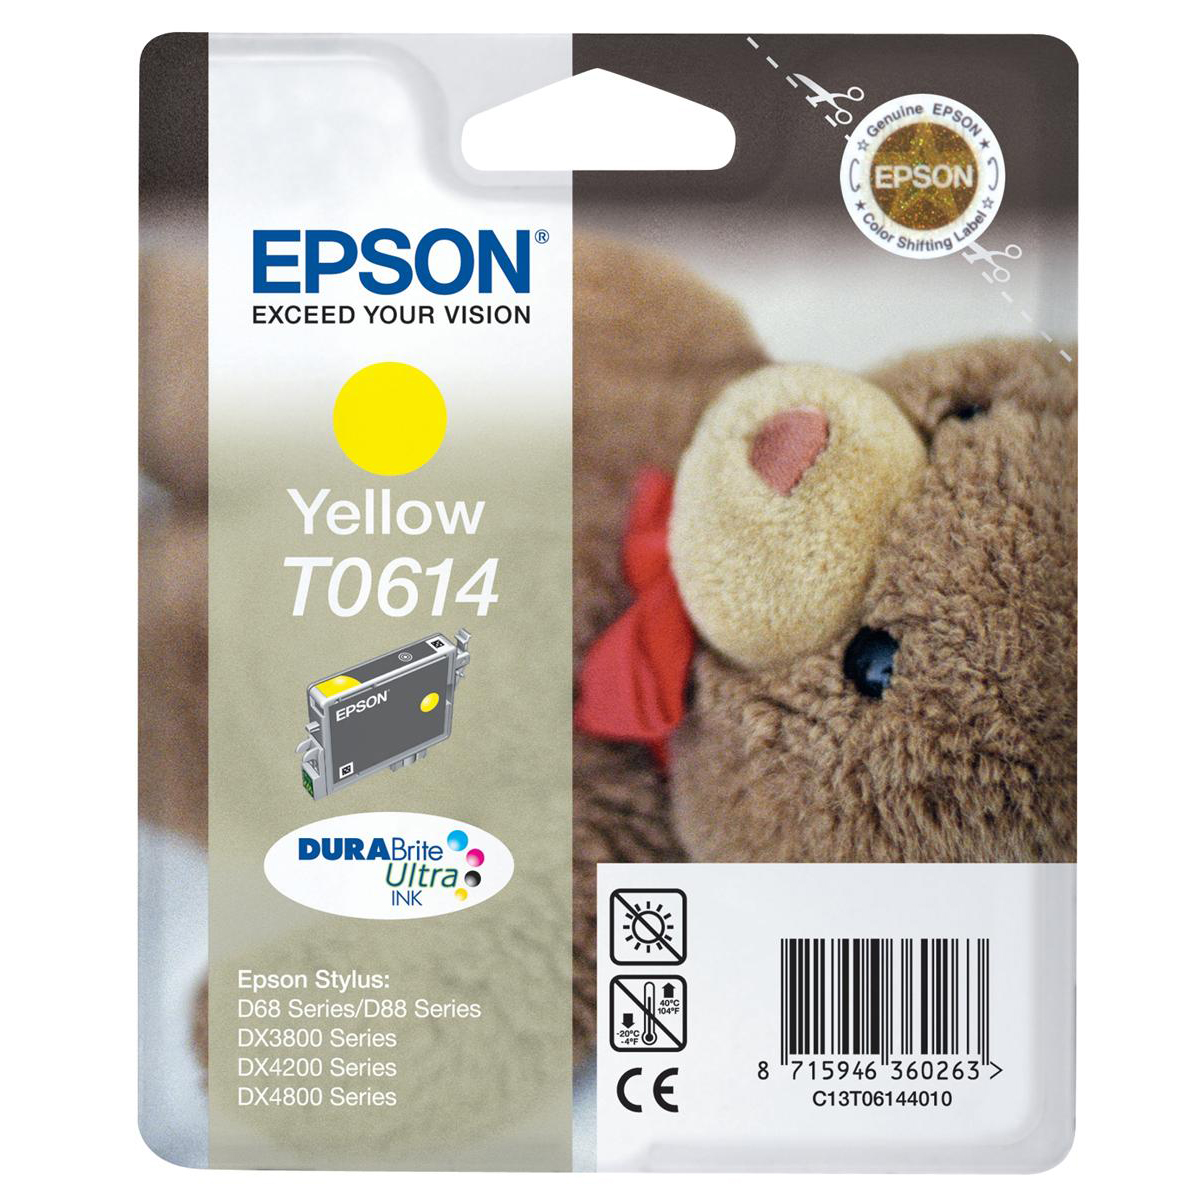 Epson T0614 Inkjet Cartridge Teddybear Page Life 250pp 8ml Yellow Ref C13T06144010